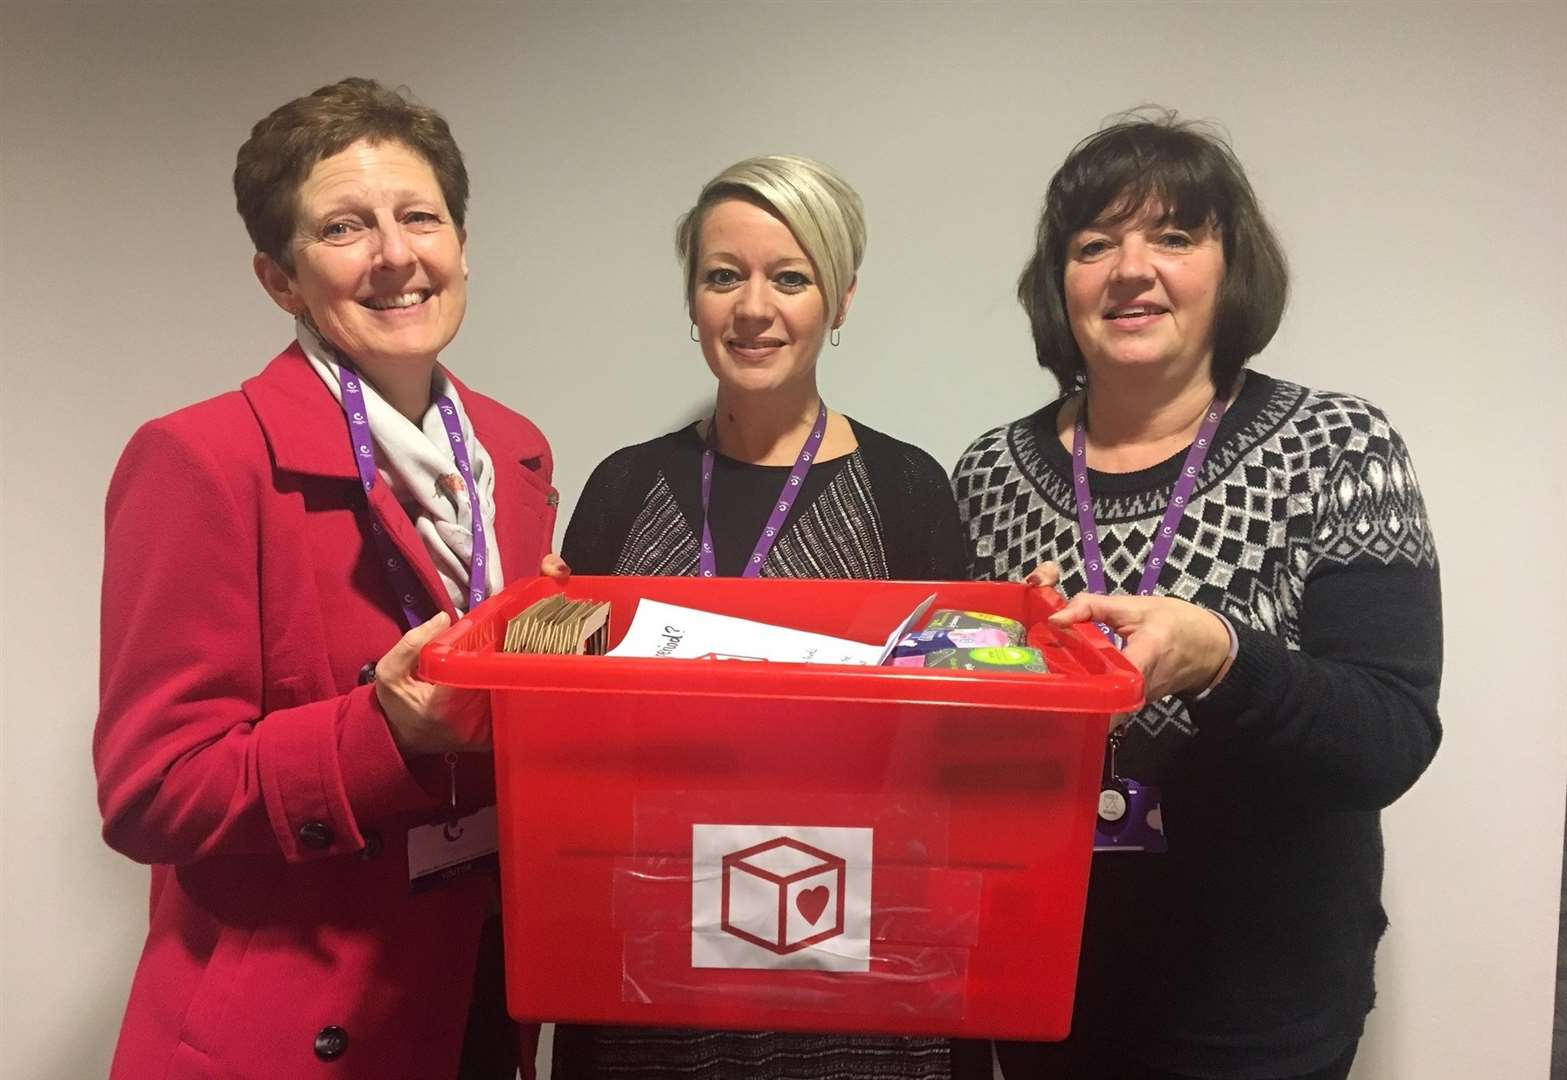 Sanitary products donation to support Haverhill's school girls